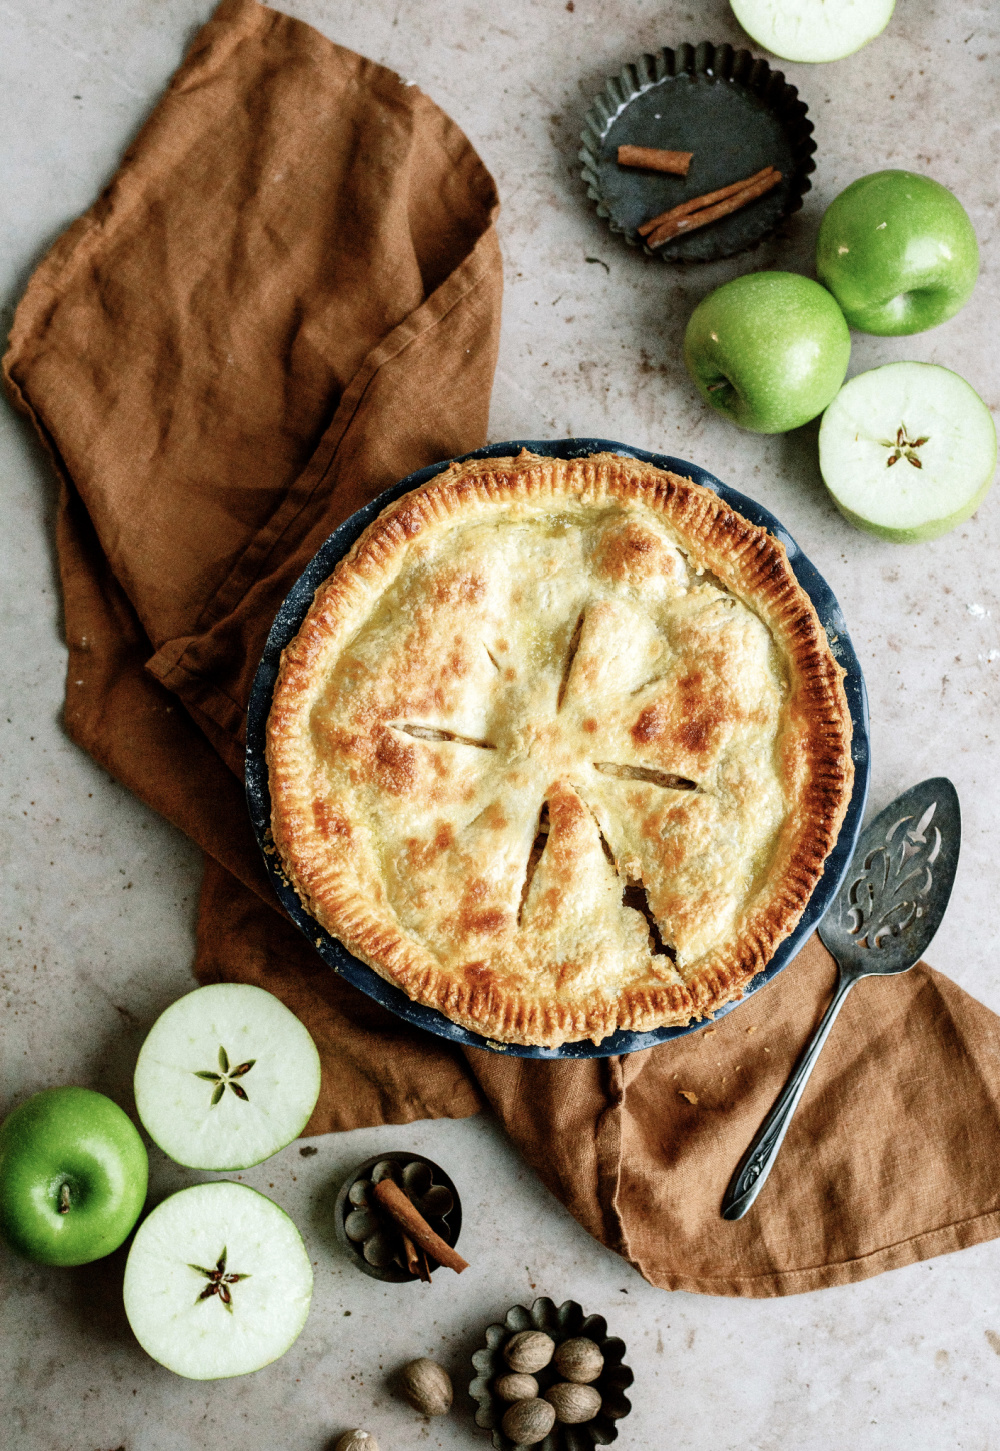 freshly baked apple pie in pie in surrounded by green apples